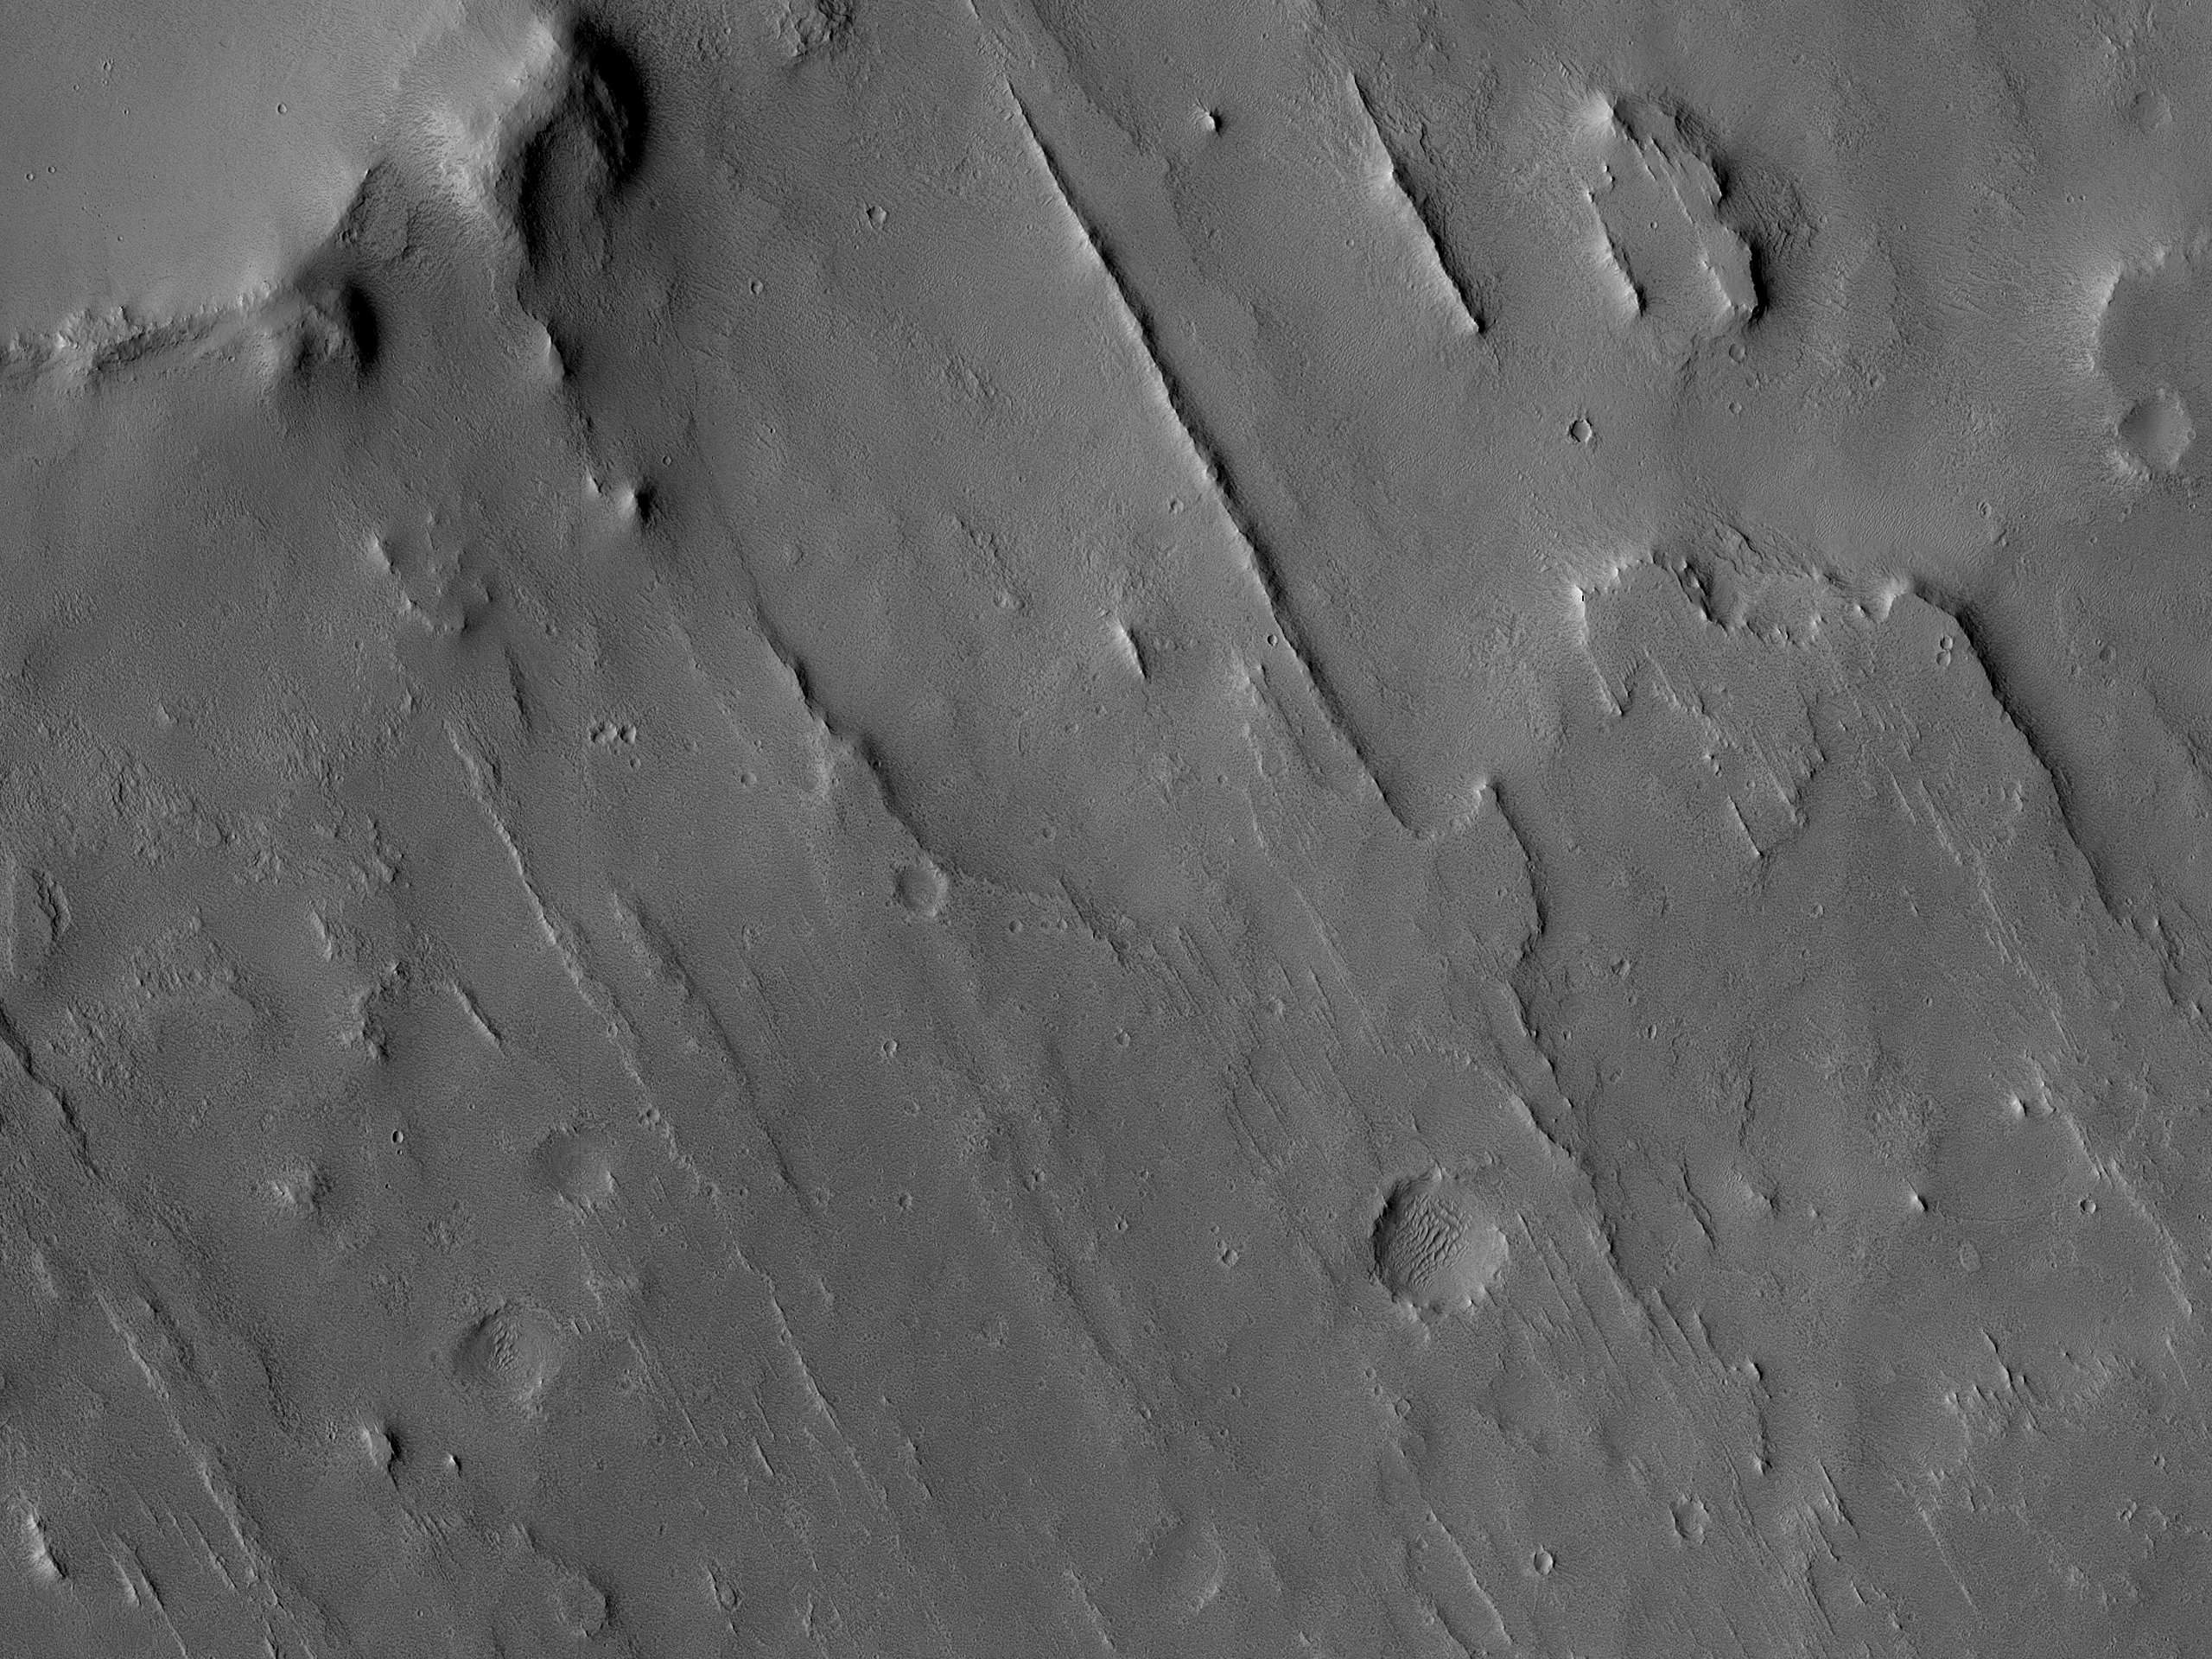 Straight Ridge-Forming Material South of Gill Crater in West Arabia Terra